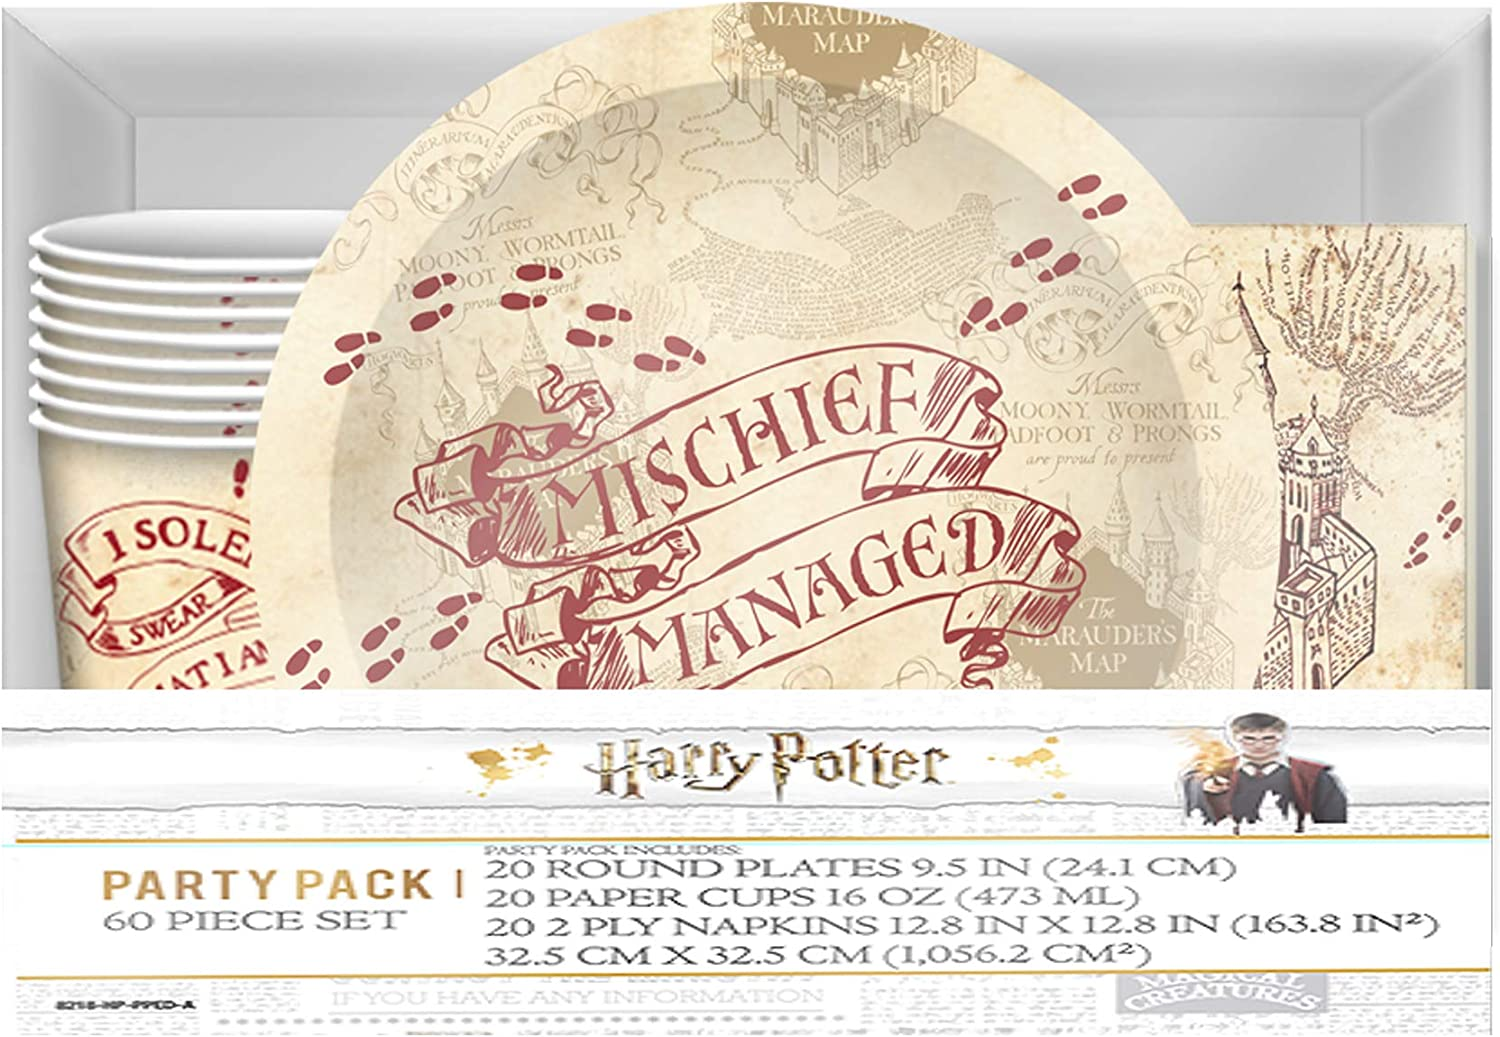 HARRY POTTER Hogwarts Paper Party Pack Set, Cups, Plates and Napkins, 60-Piece, Multicolored